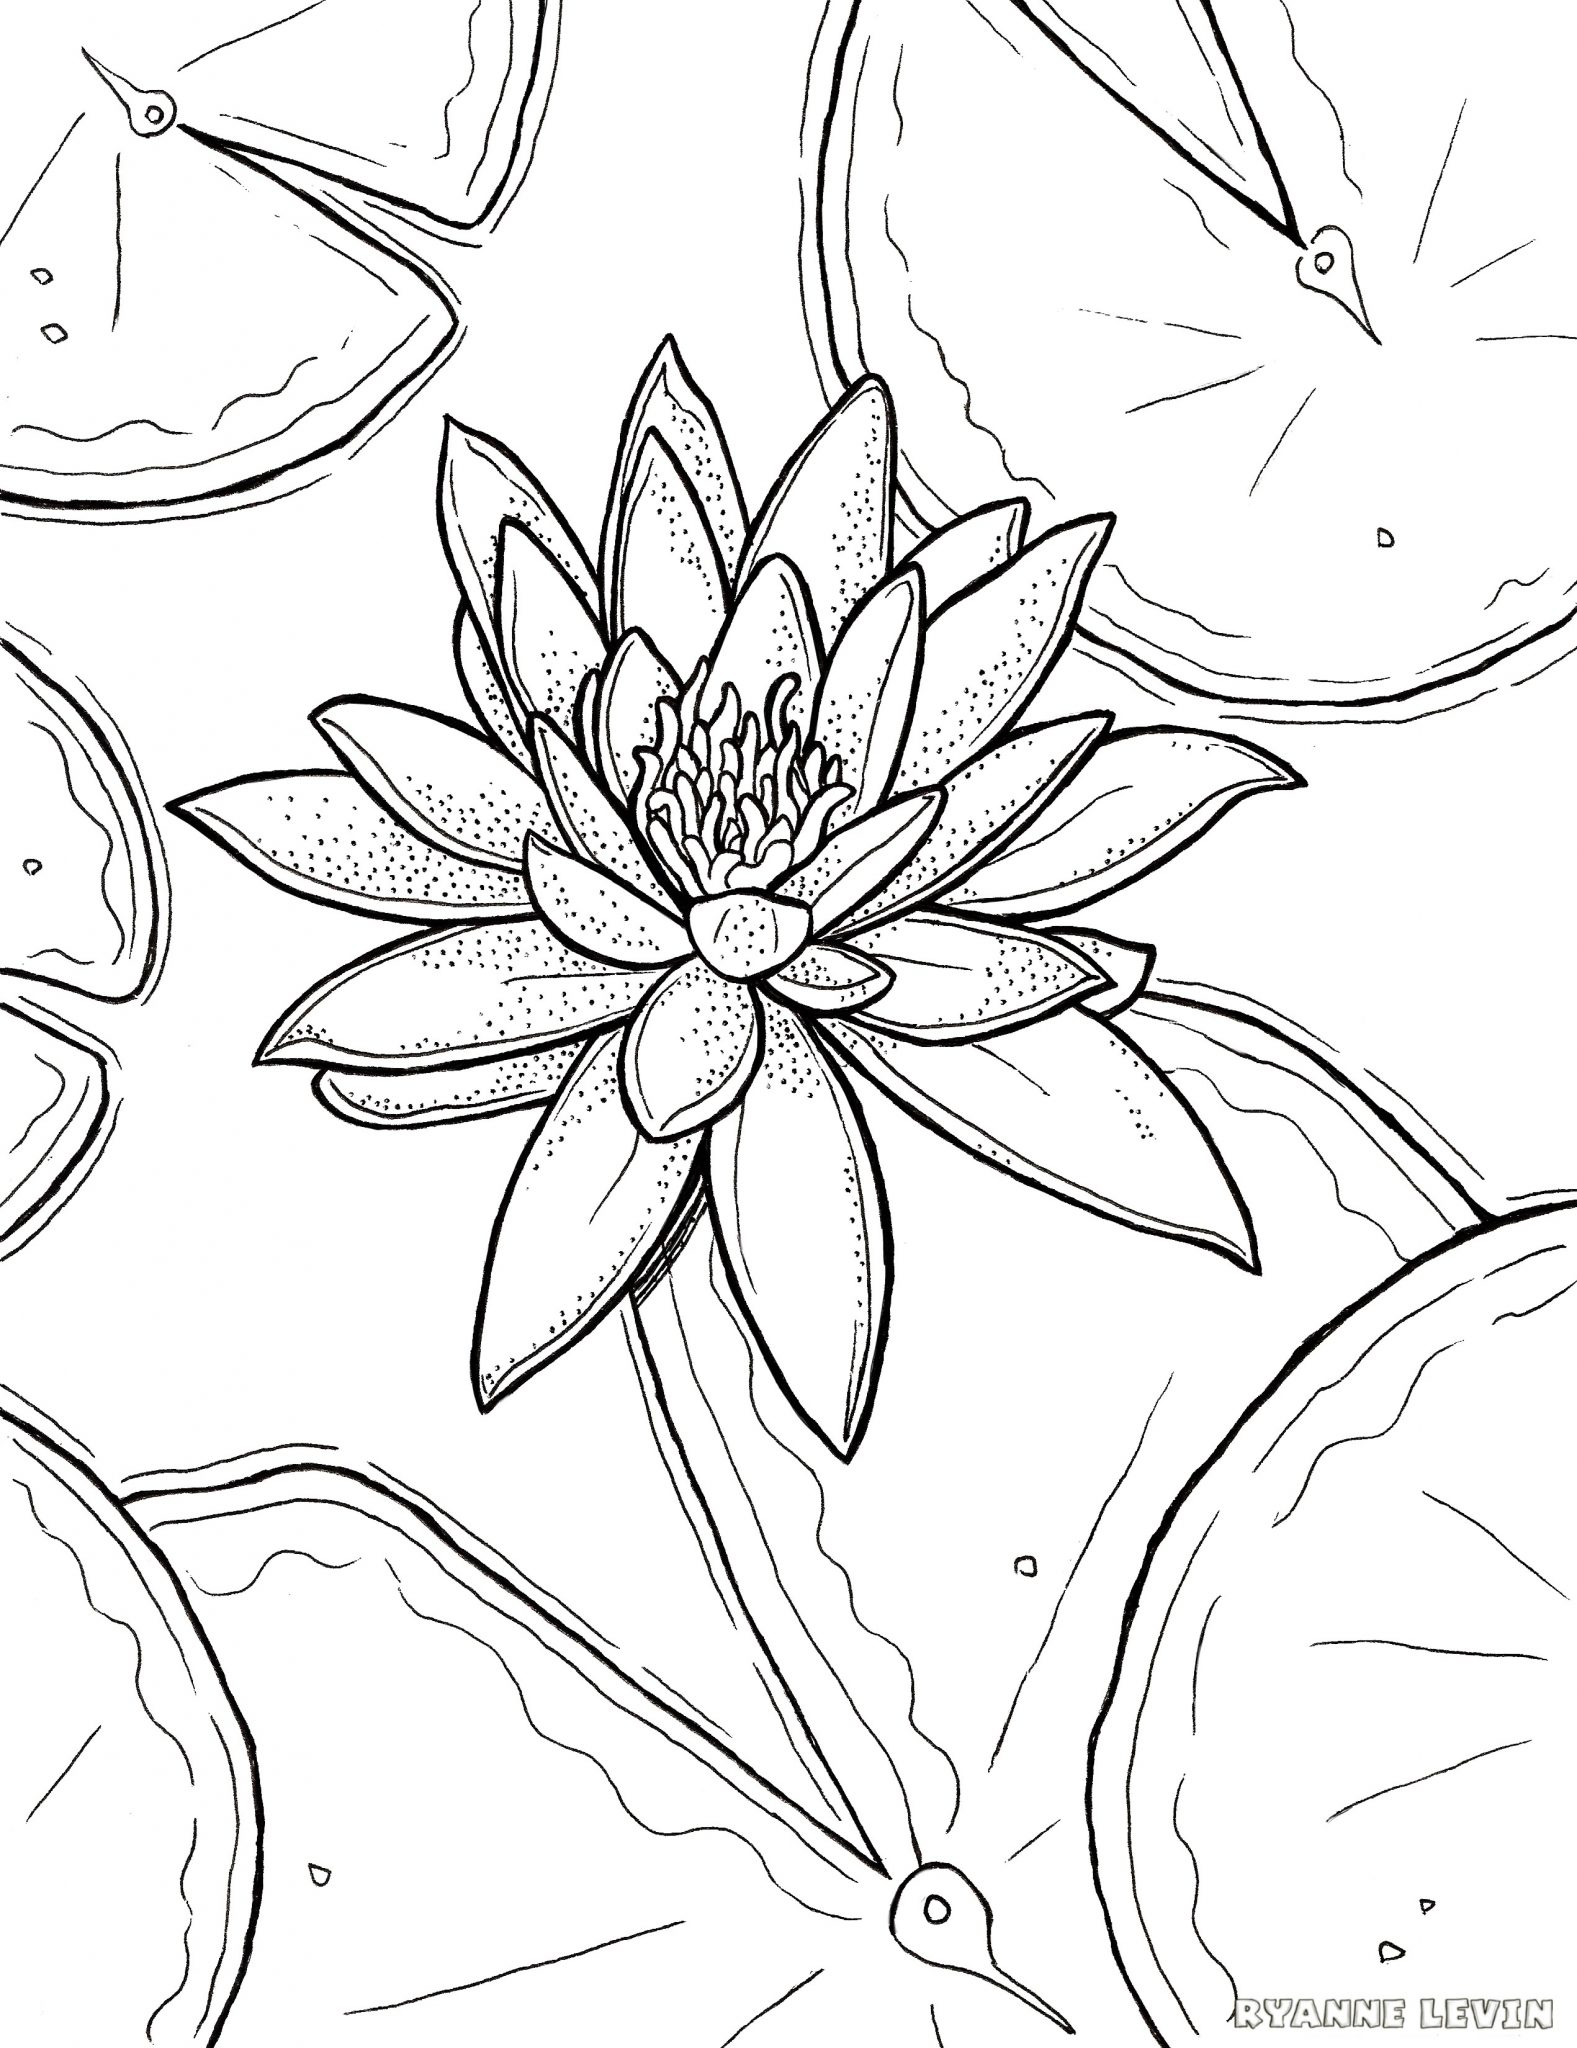 hight resolution of free printable water lily coloring page download u2013 ryanne levinfree printable water lily coloring page